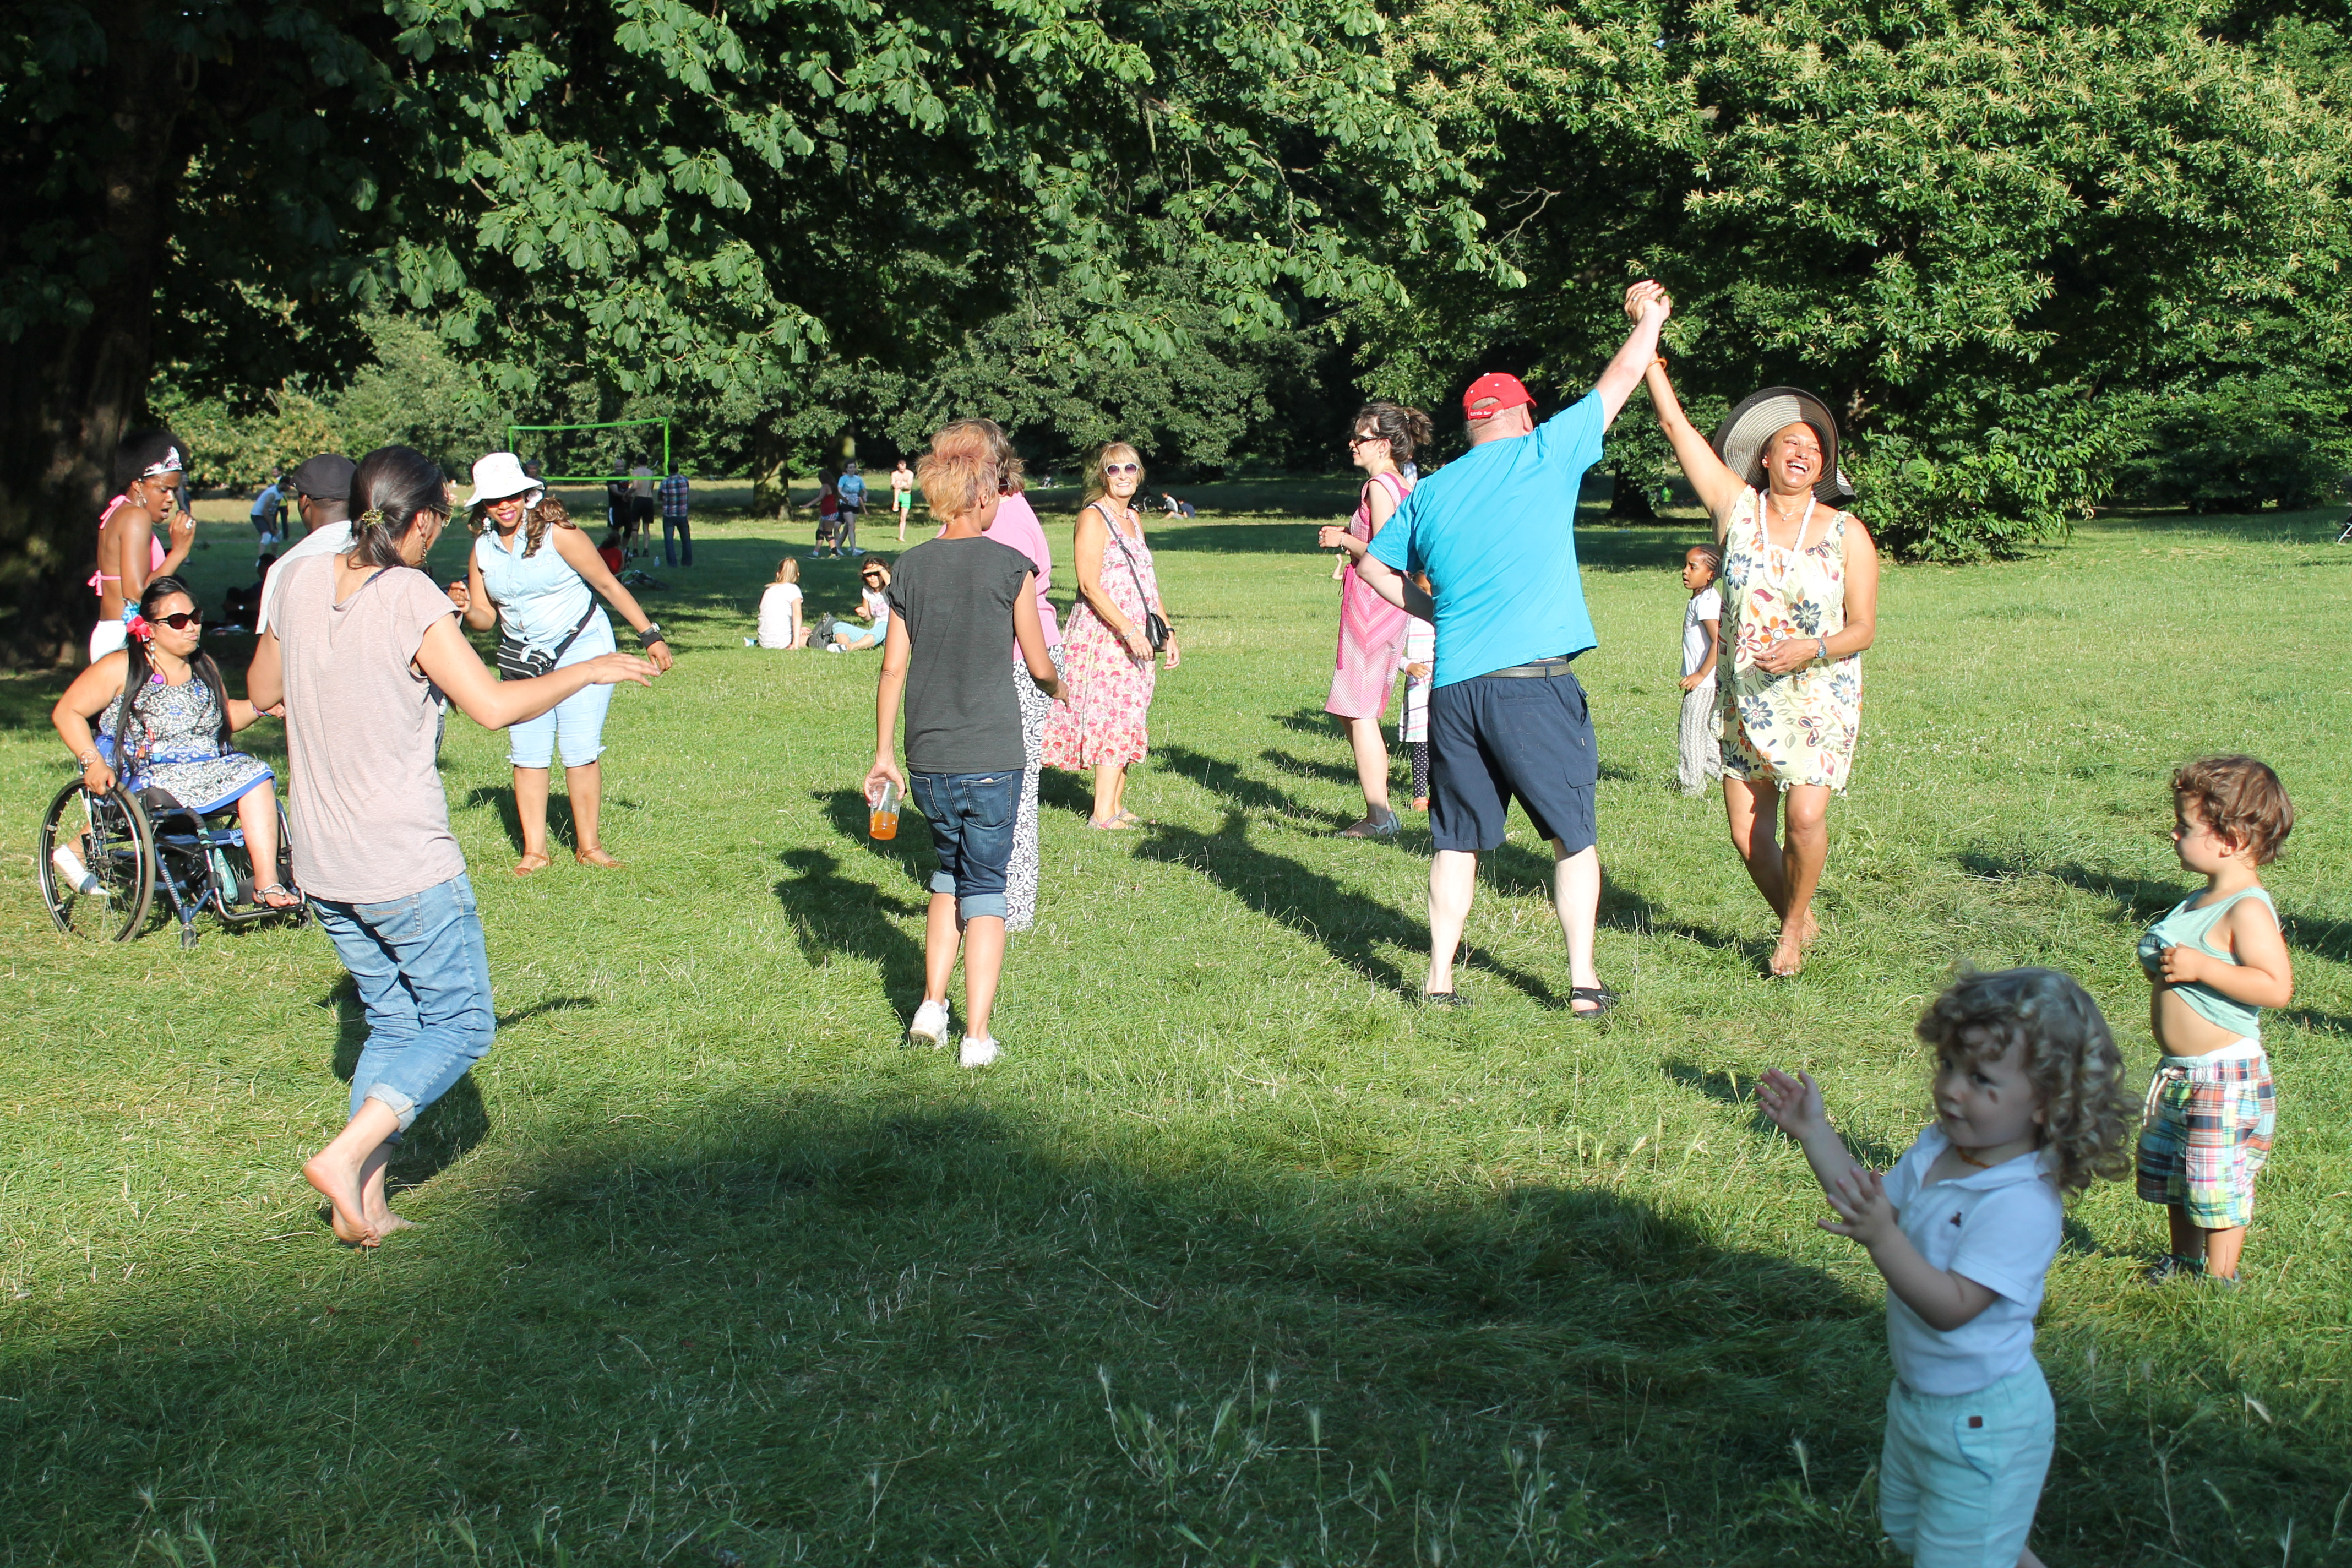 Photo 4: A Dance in the Park, everyone is dancing in the park, joined by some children and parents